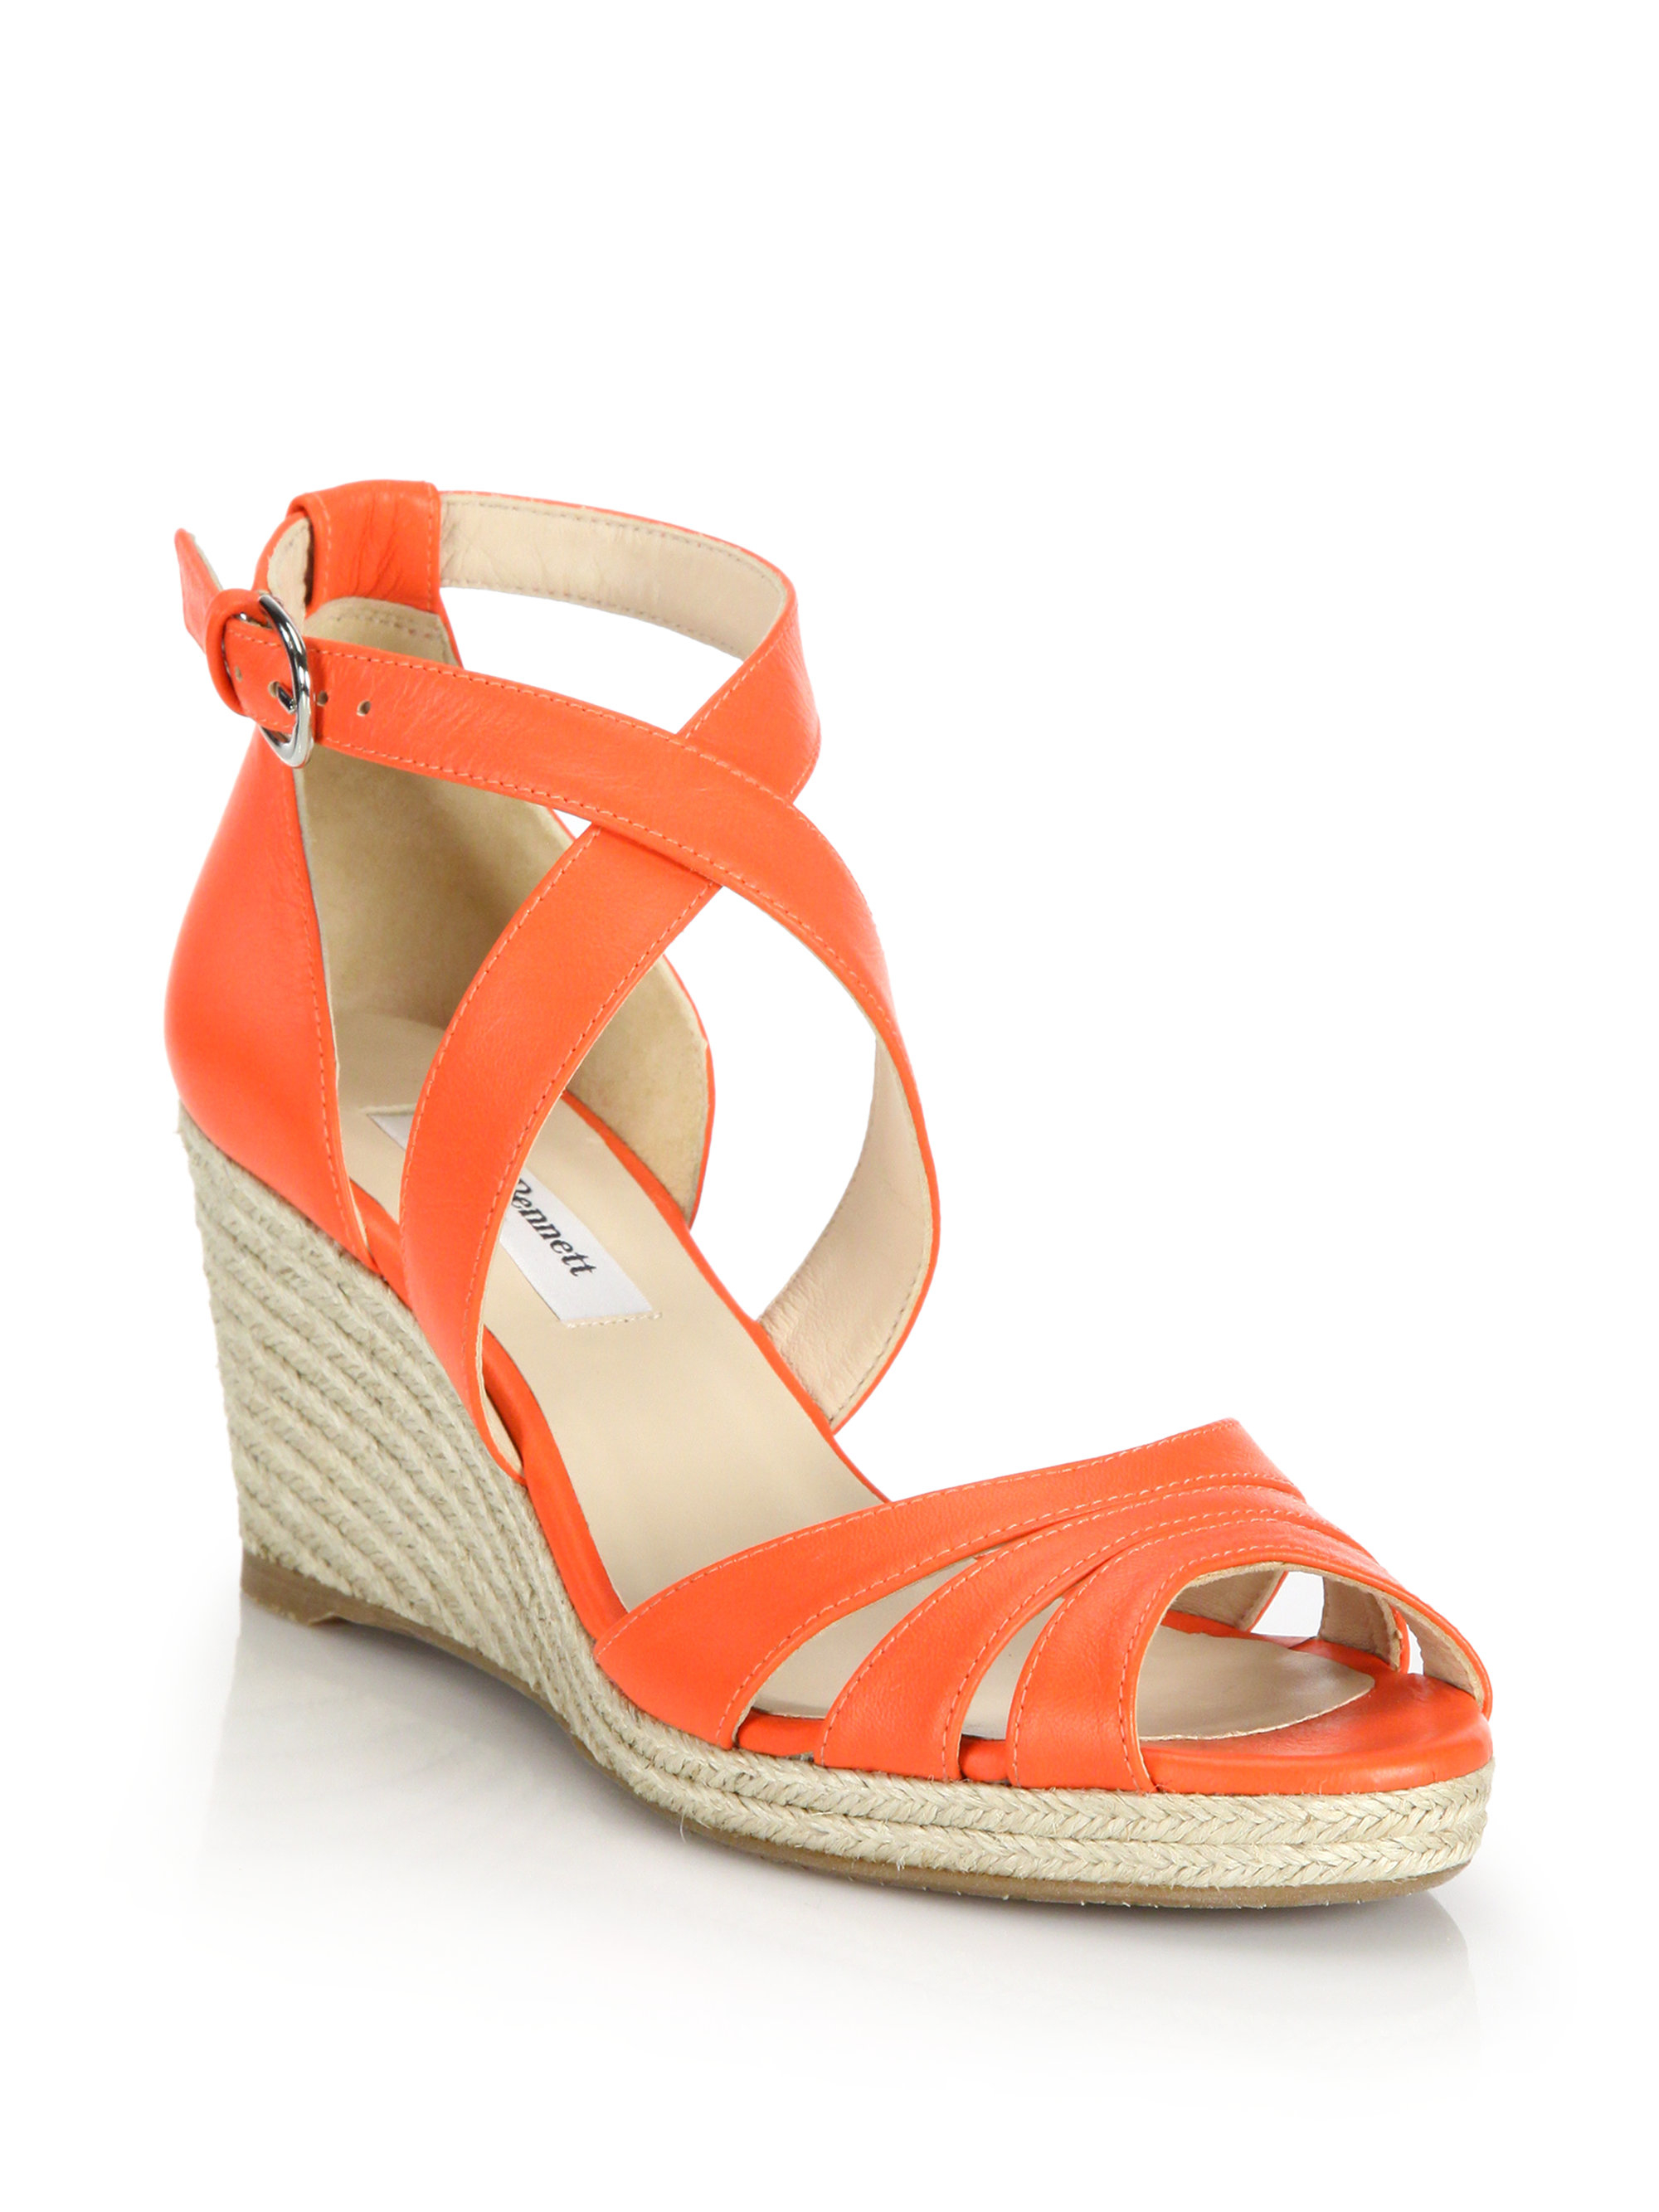 L K Bennett Priya Leather Espadrille Wedge Sandals In